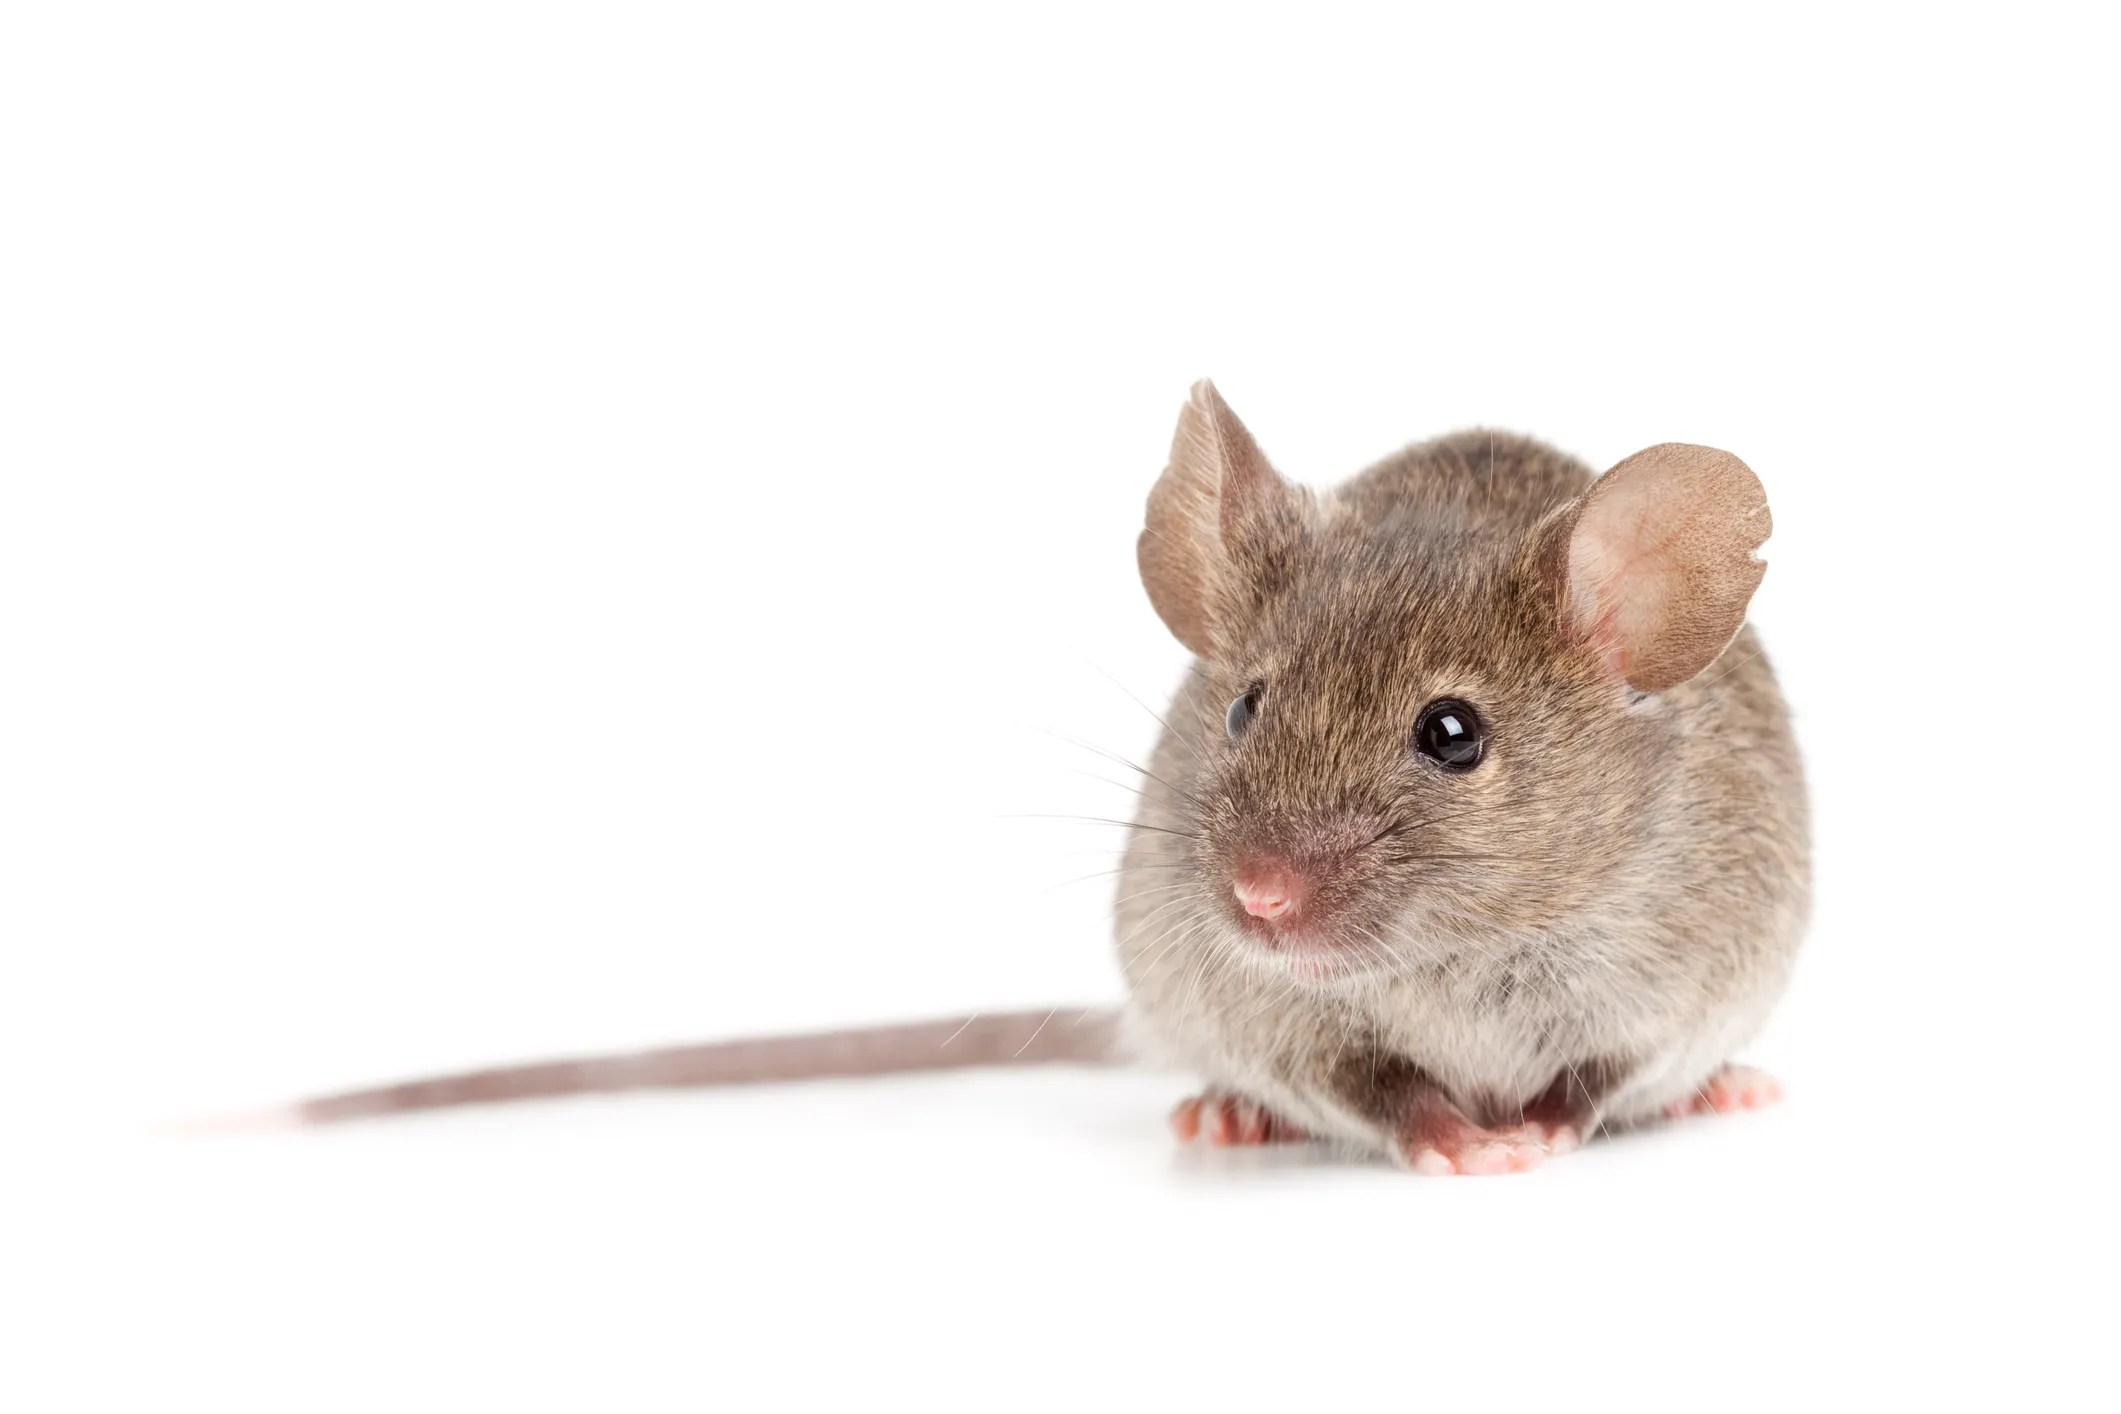 Washoe County reports first case of hantavirus since 2017